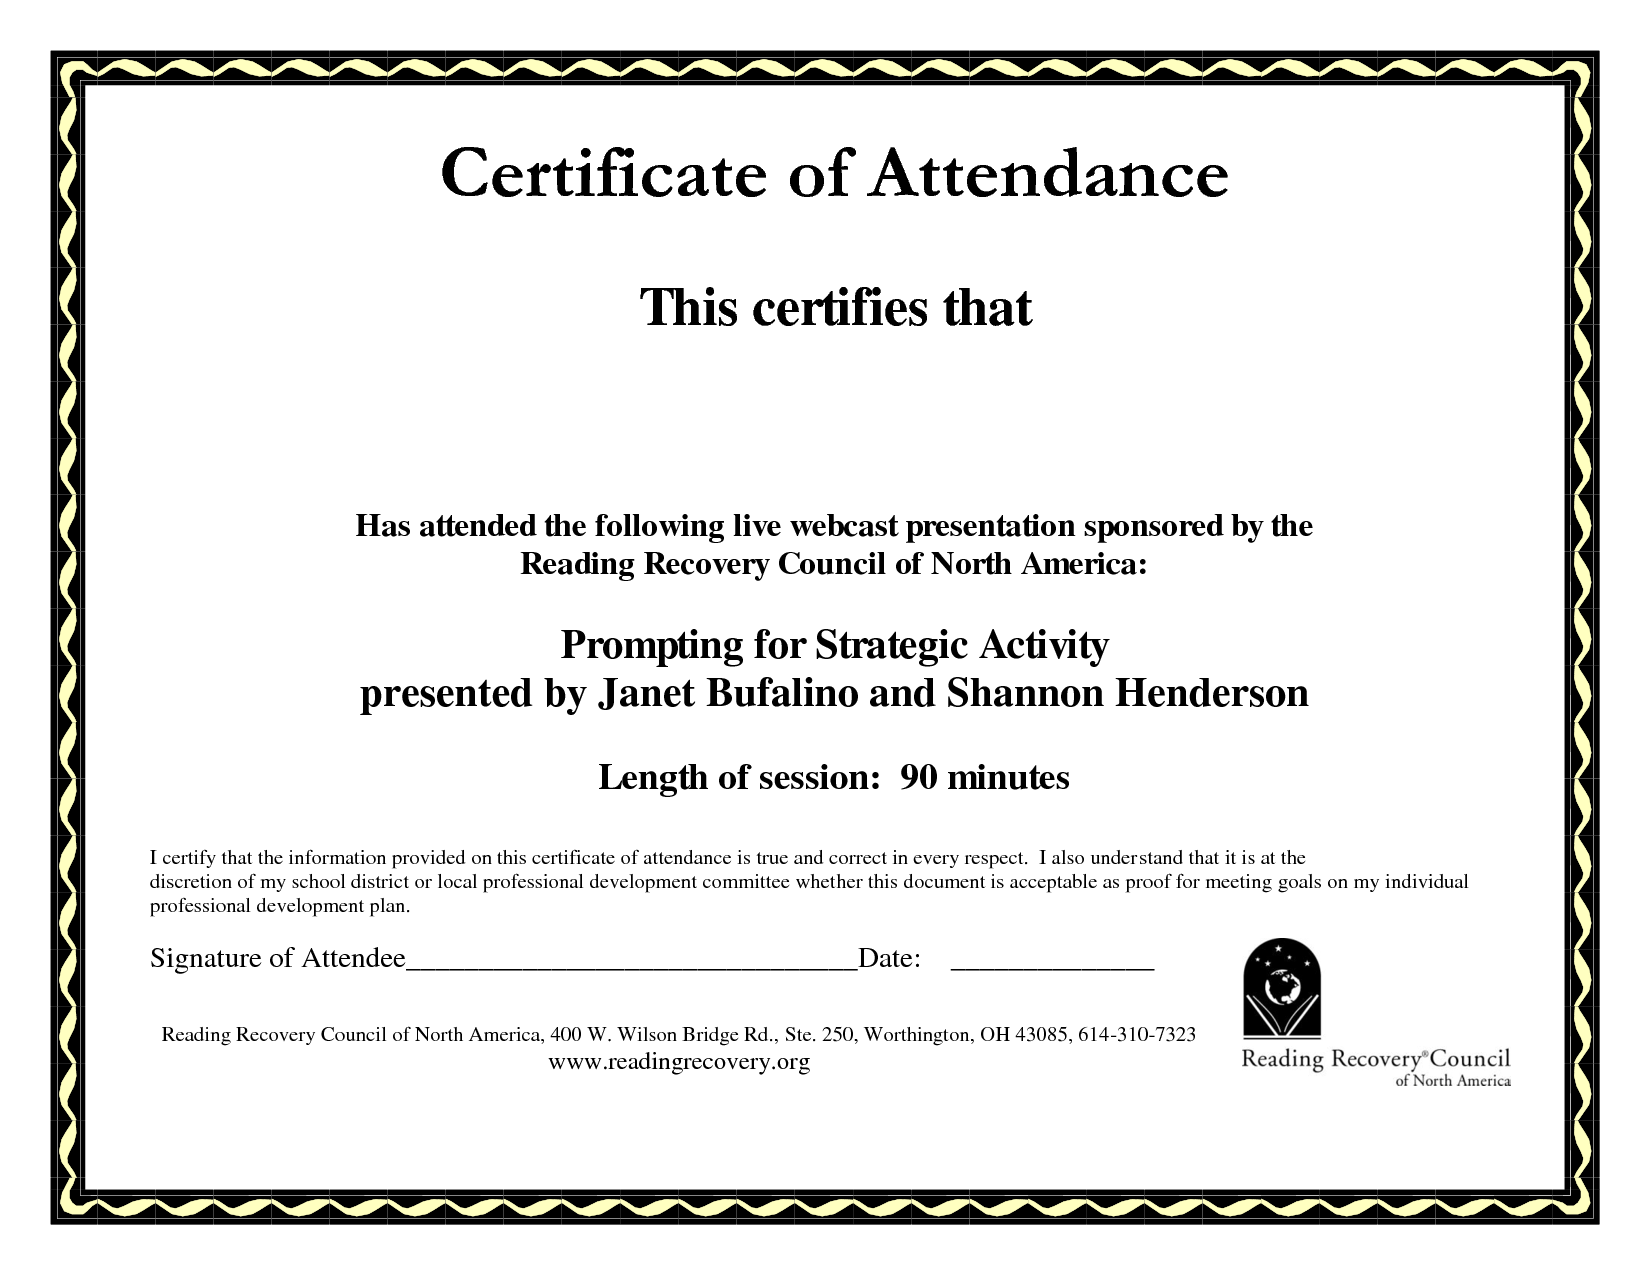 certificate of attendance templates resume builder certificate of attendance templates award certificates printable certificate templates templates 2 diy certificate videos